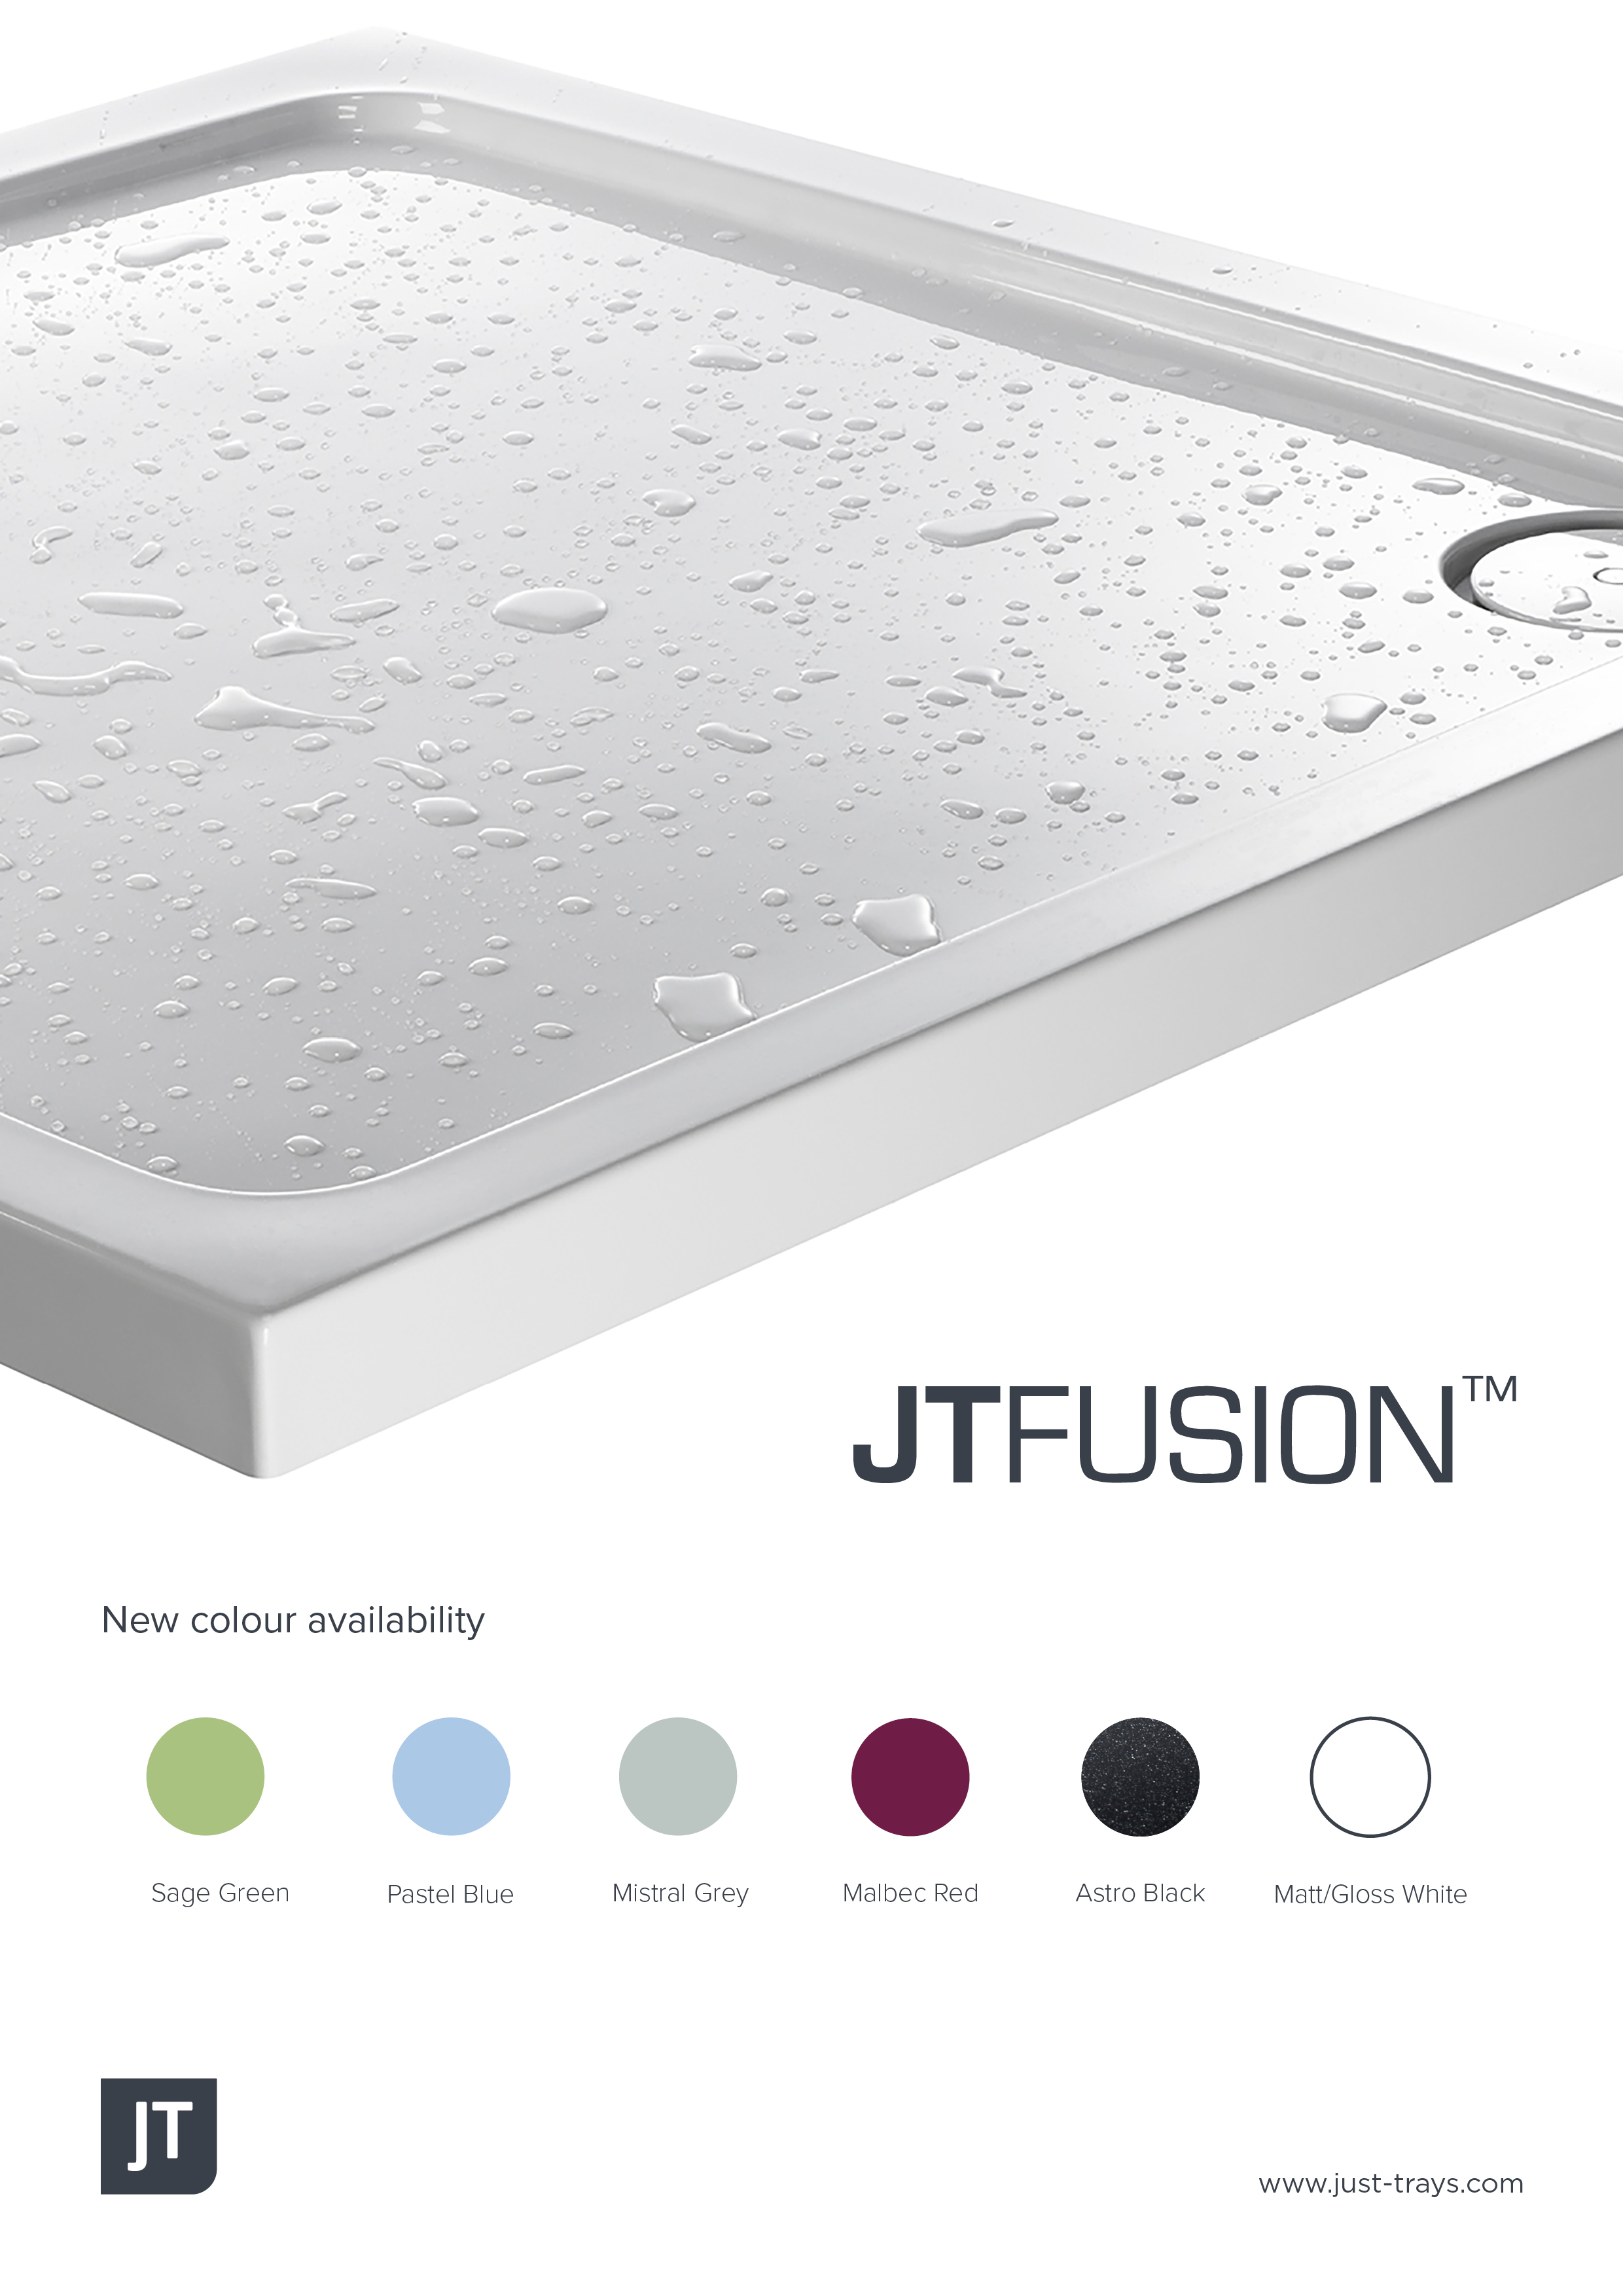 NEW COLOUR OPTIONS FOR JTFUSION